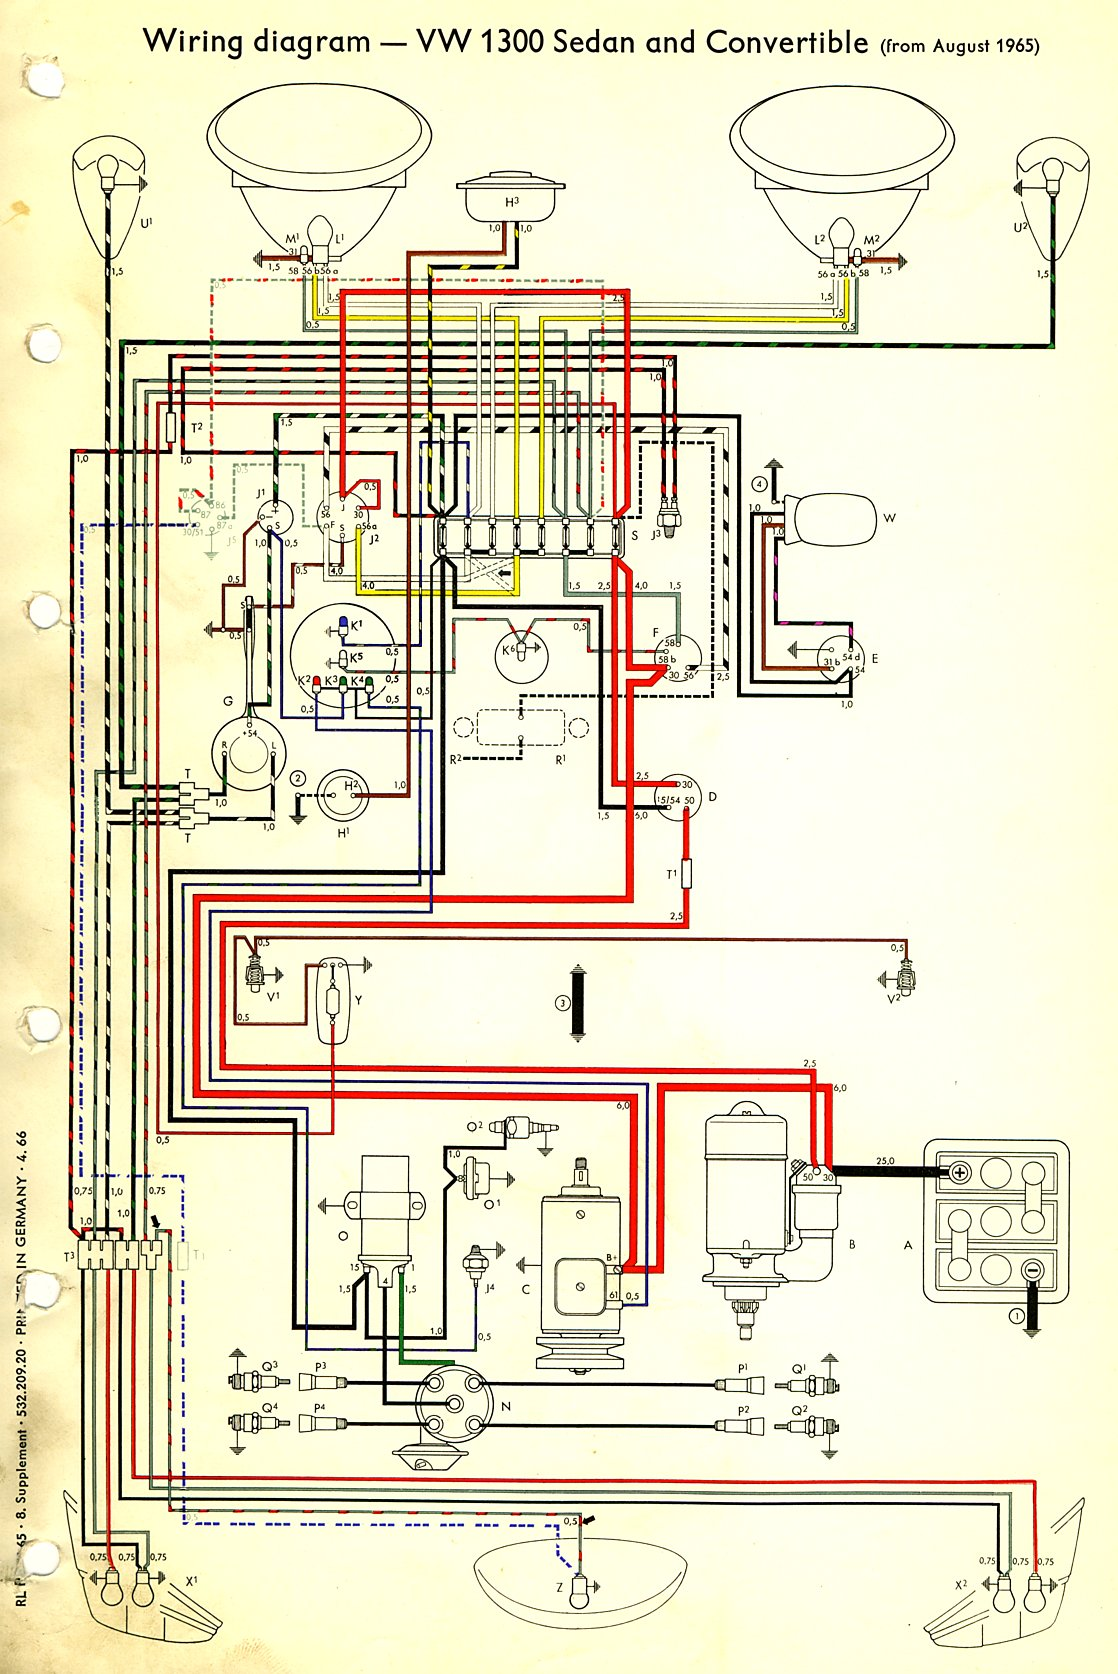 66 vw wiring diagram today wiring diagram 1960 VW Beetle Wiring Diagram 1966 beetle wiring diagram thegoldenbug com 1968 vw bug wiring schematic 66 vw wiring diagram